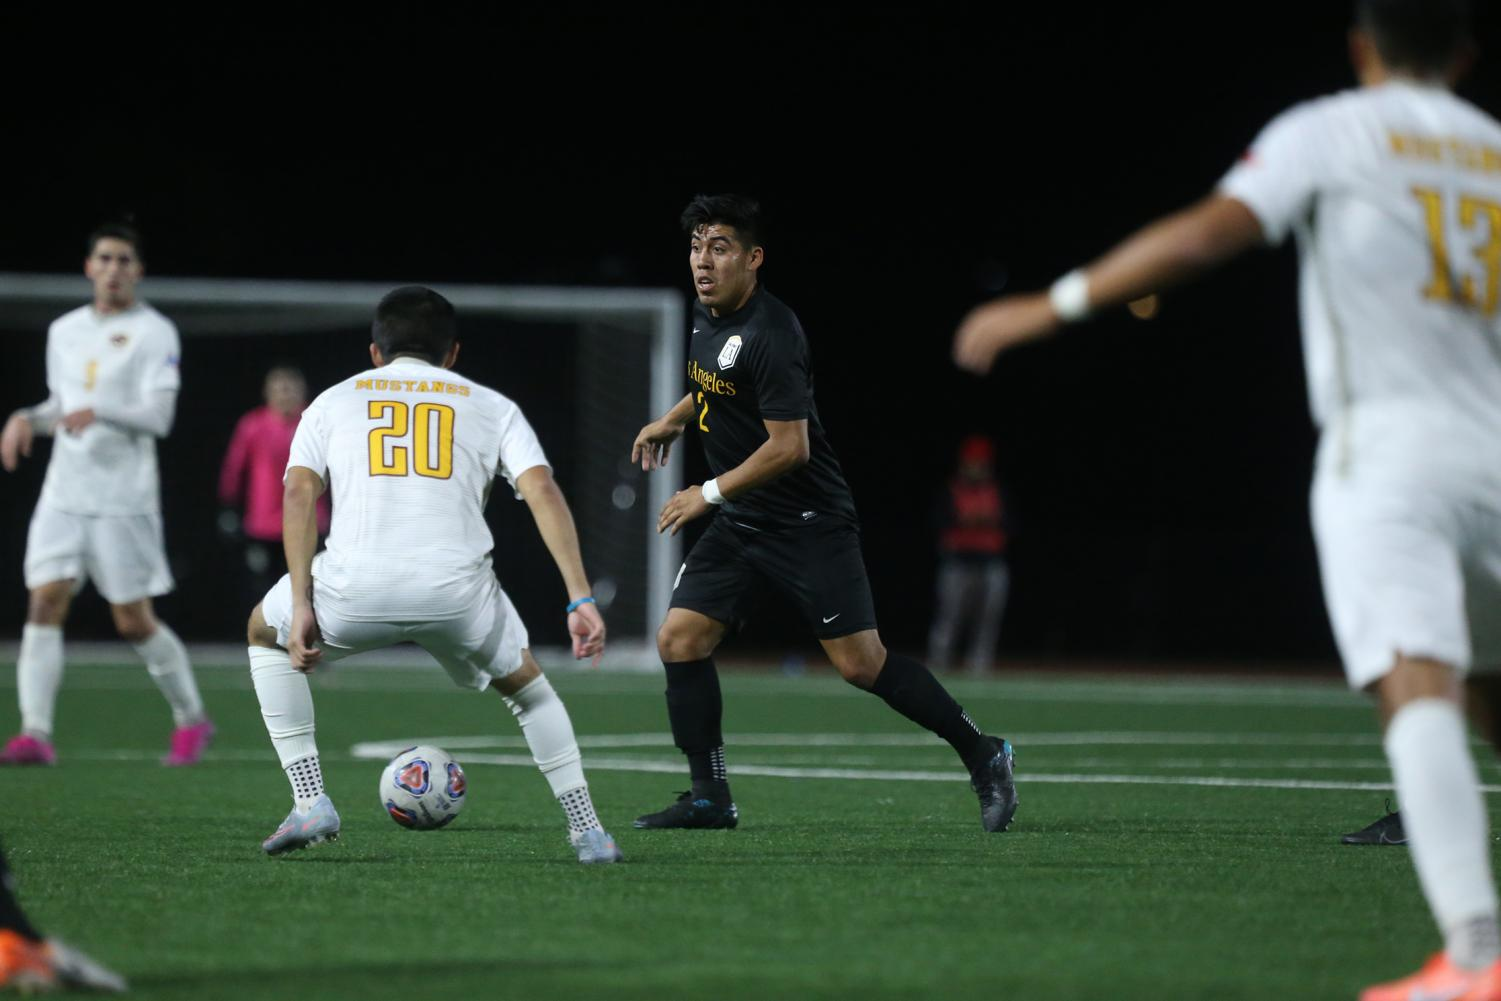 Carlos Zarate (2) goes in for the ball at the Cal State LA men's soccer game against Midwestern State.